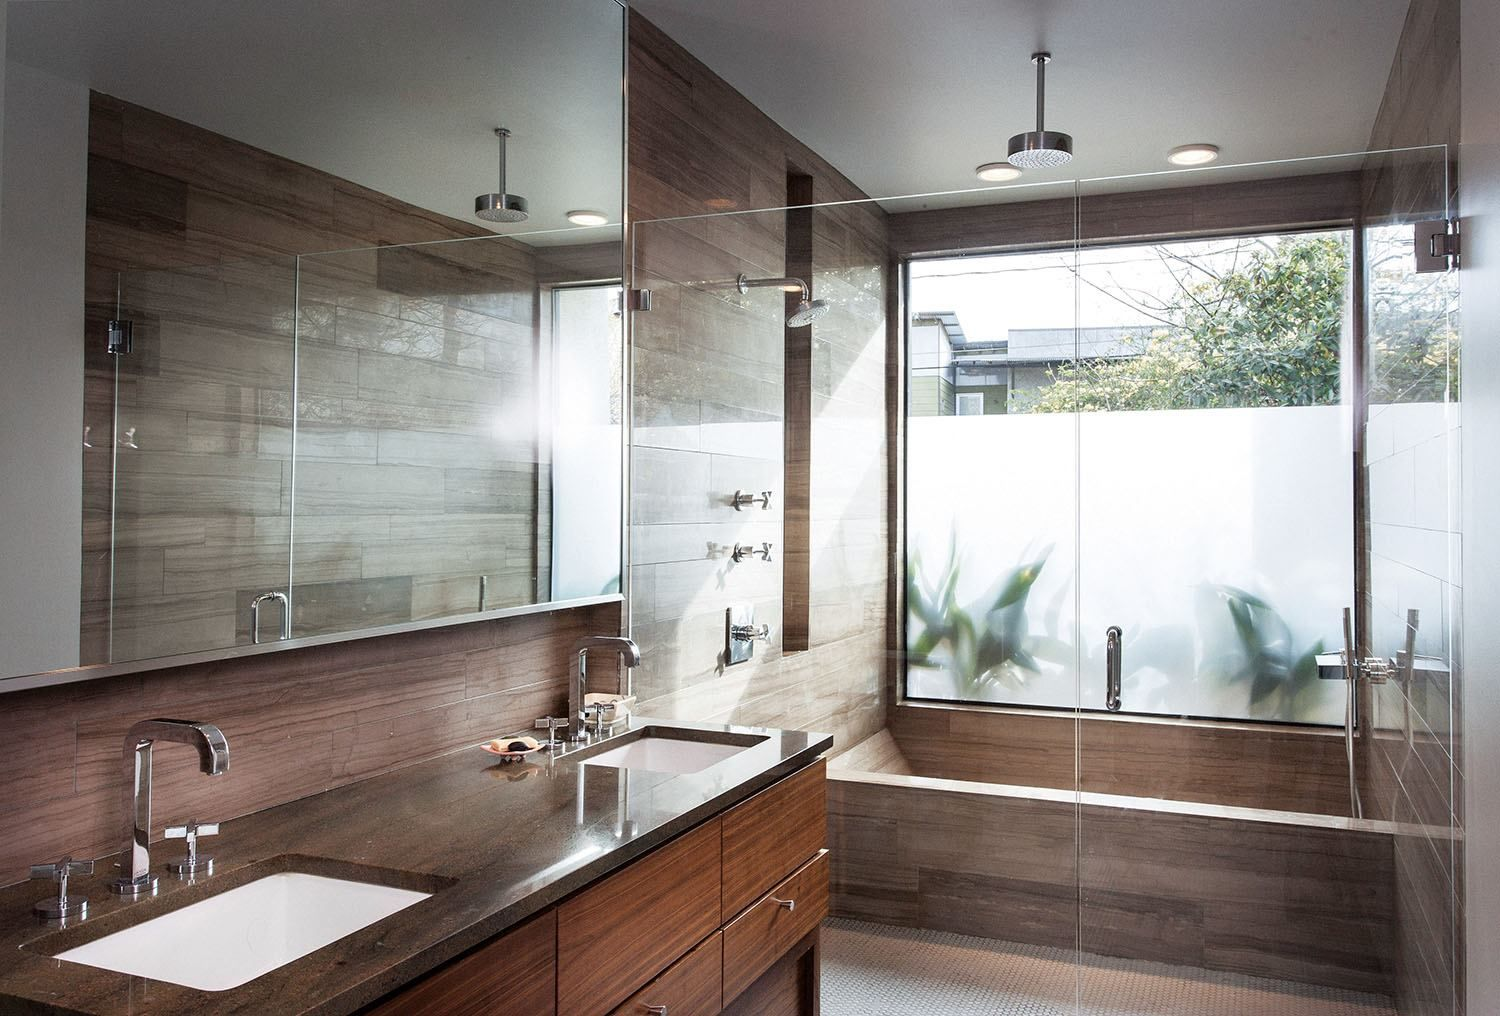 Alterstudio Architecture Designed This Bathroom With Privacy And Extraordinary Austin Tx Bathroom Remodeling Inspiration Design